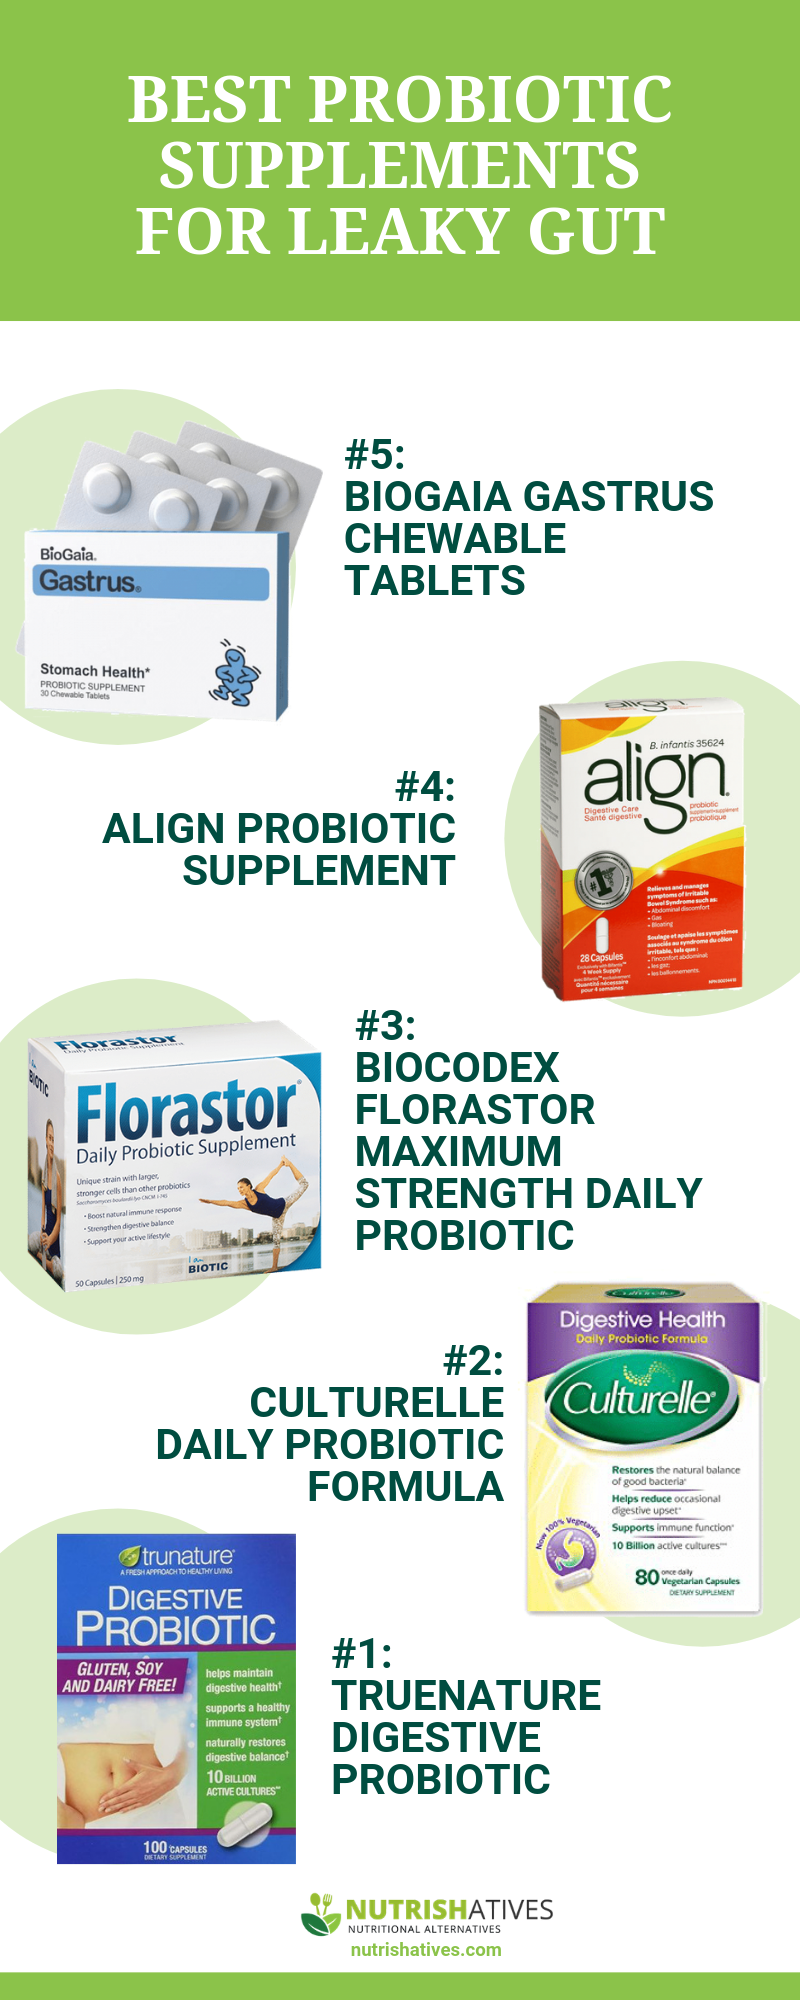 Best Probiotic Supplements for Leaky Gut Infographic